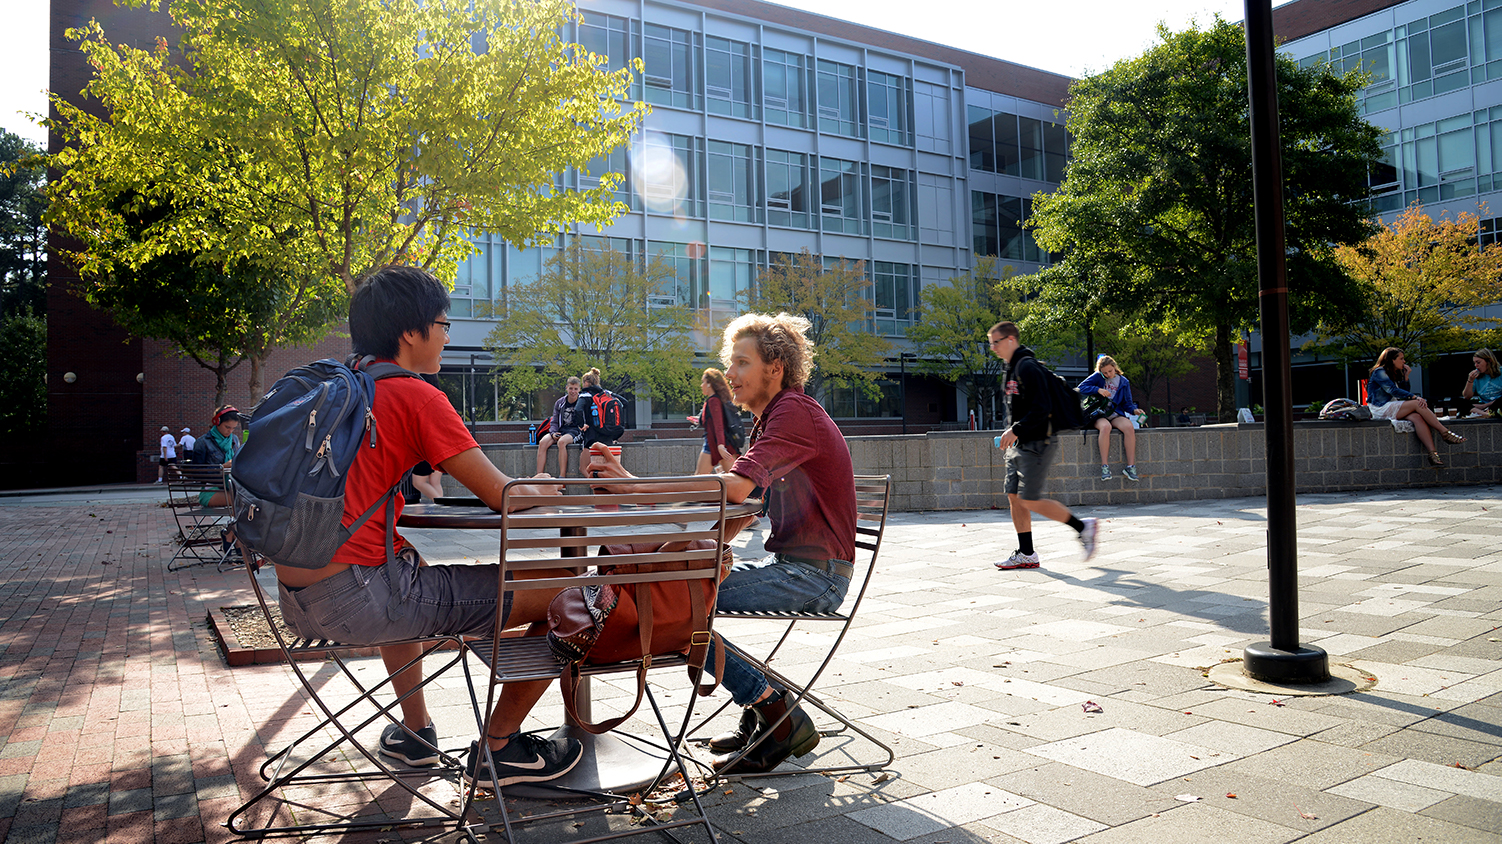 Two NC State students chat at an outdoor table on NC State's campus.